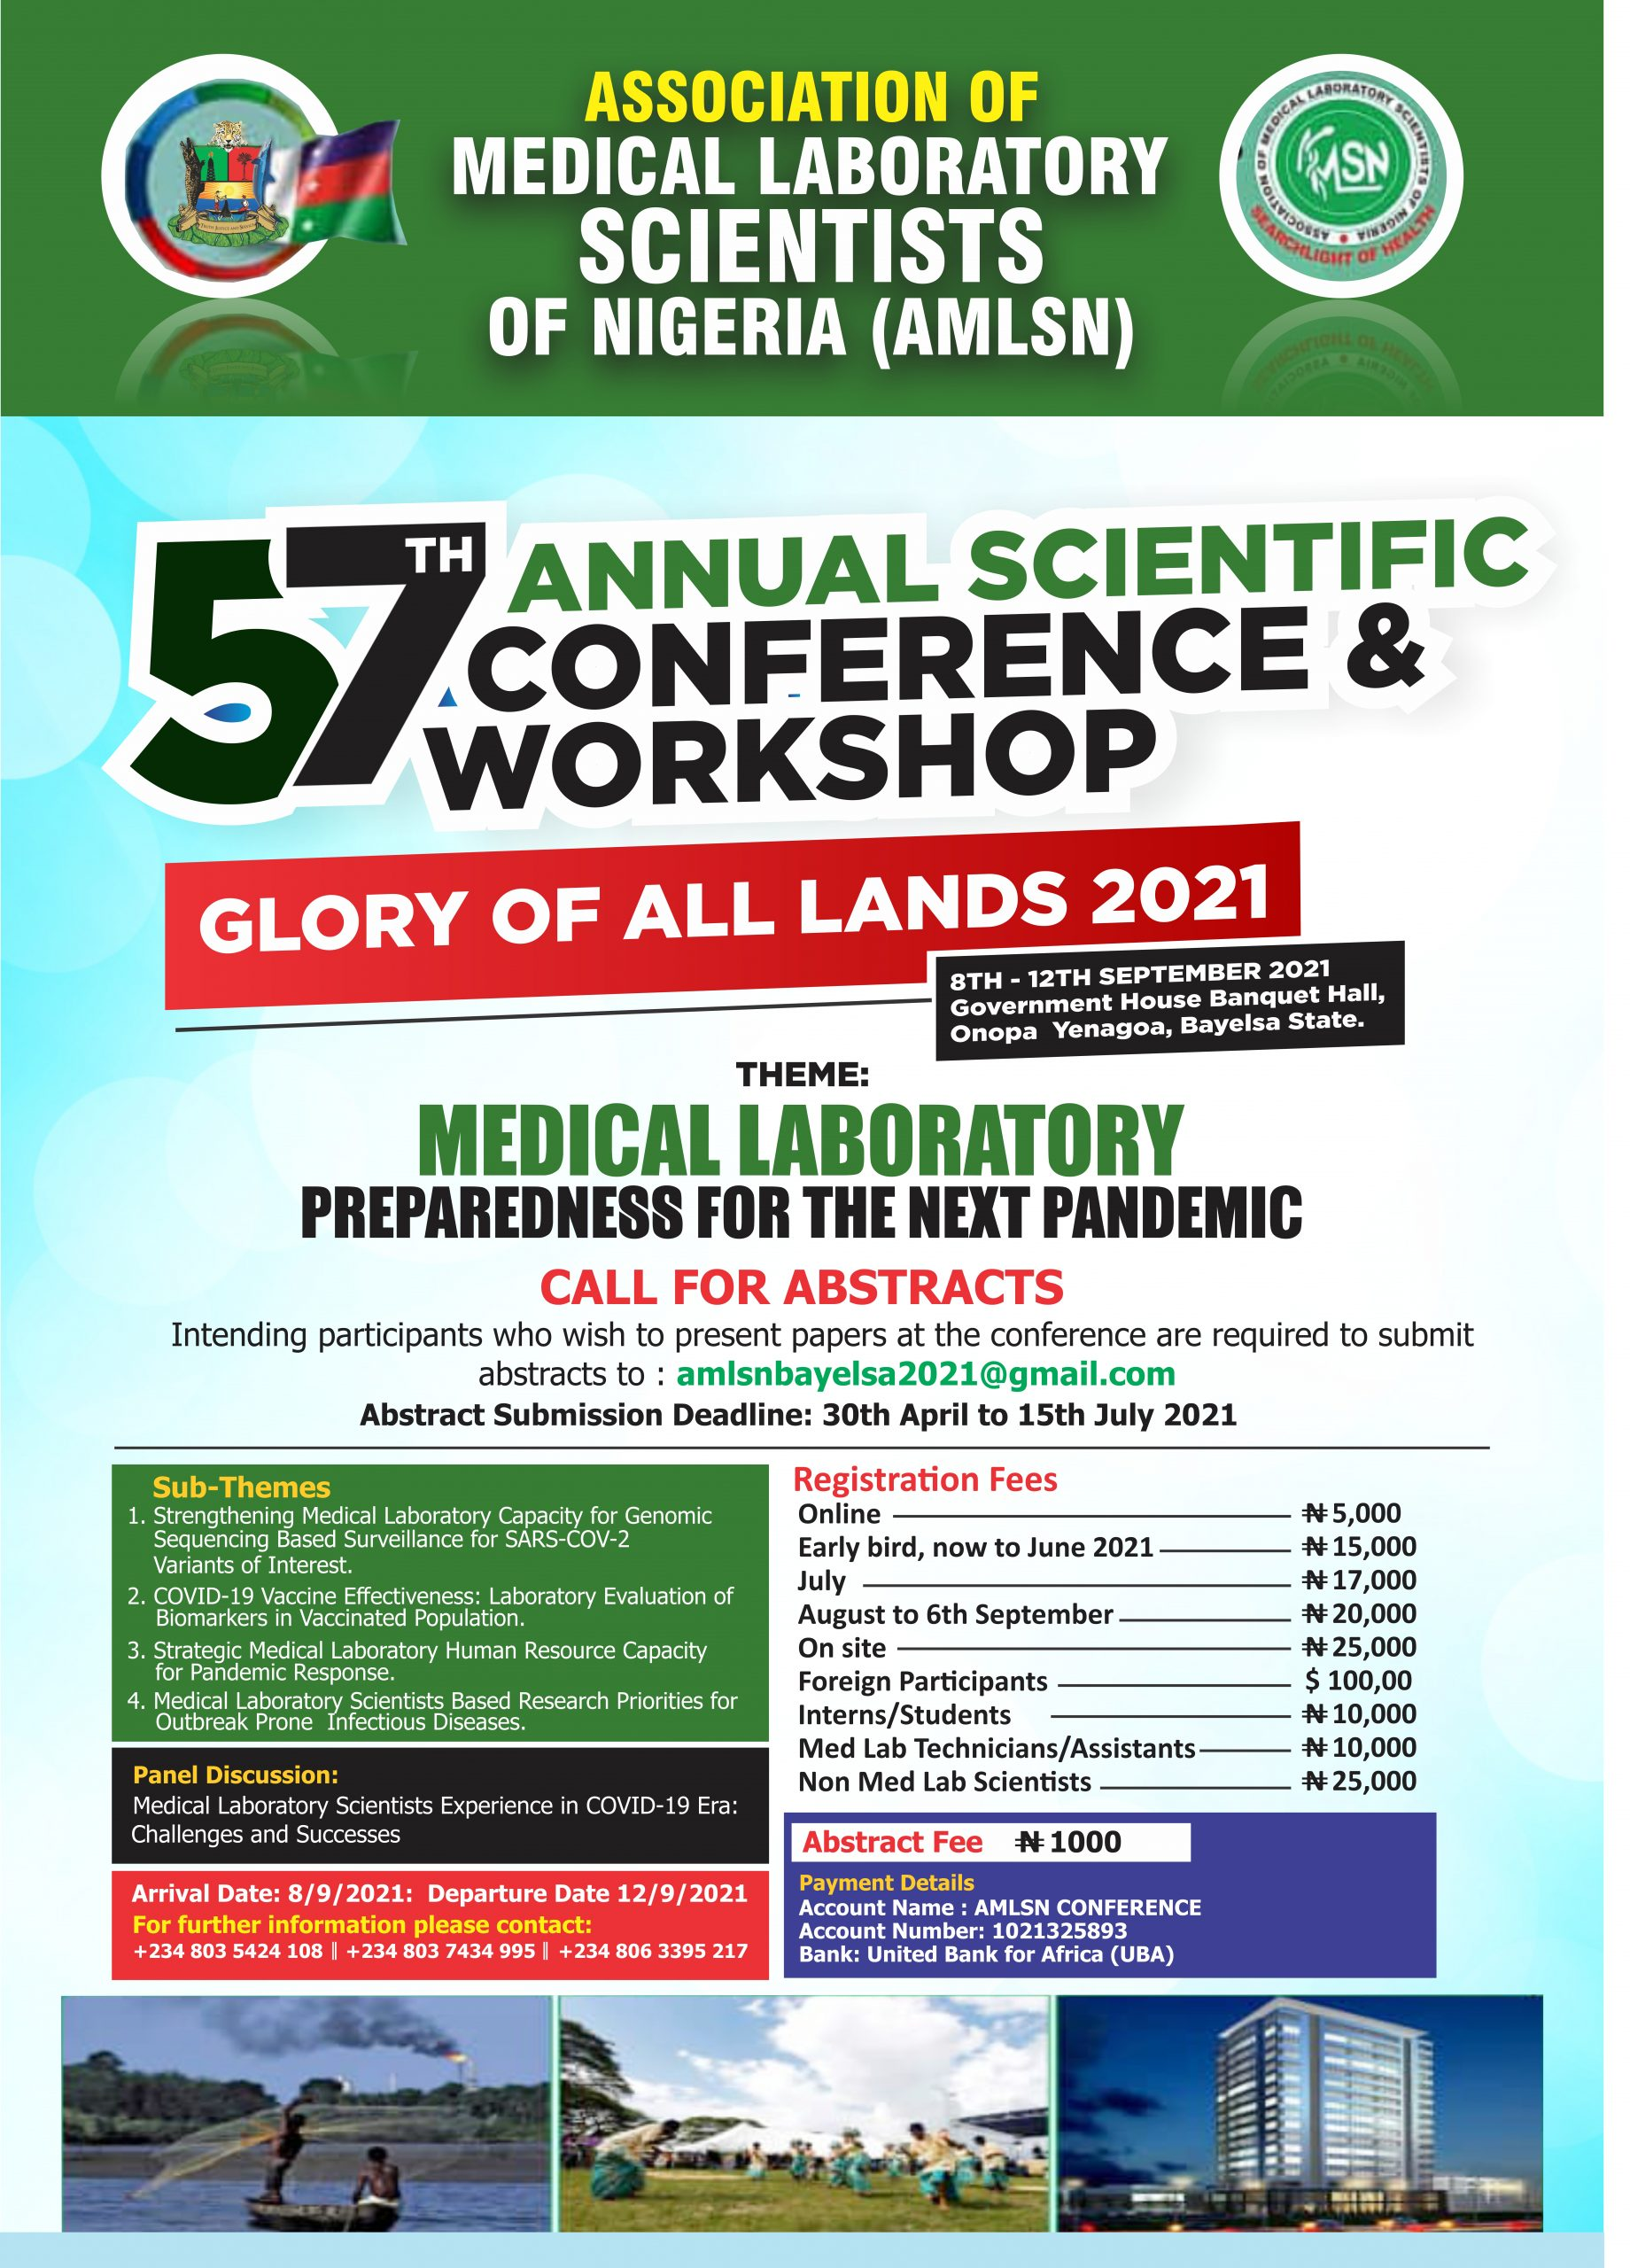 57TH ANNUAL SCIENTIFIC CONFERENCE AND WORKSHOP